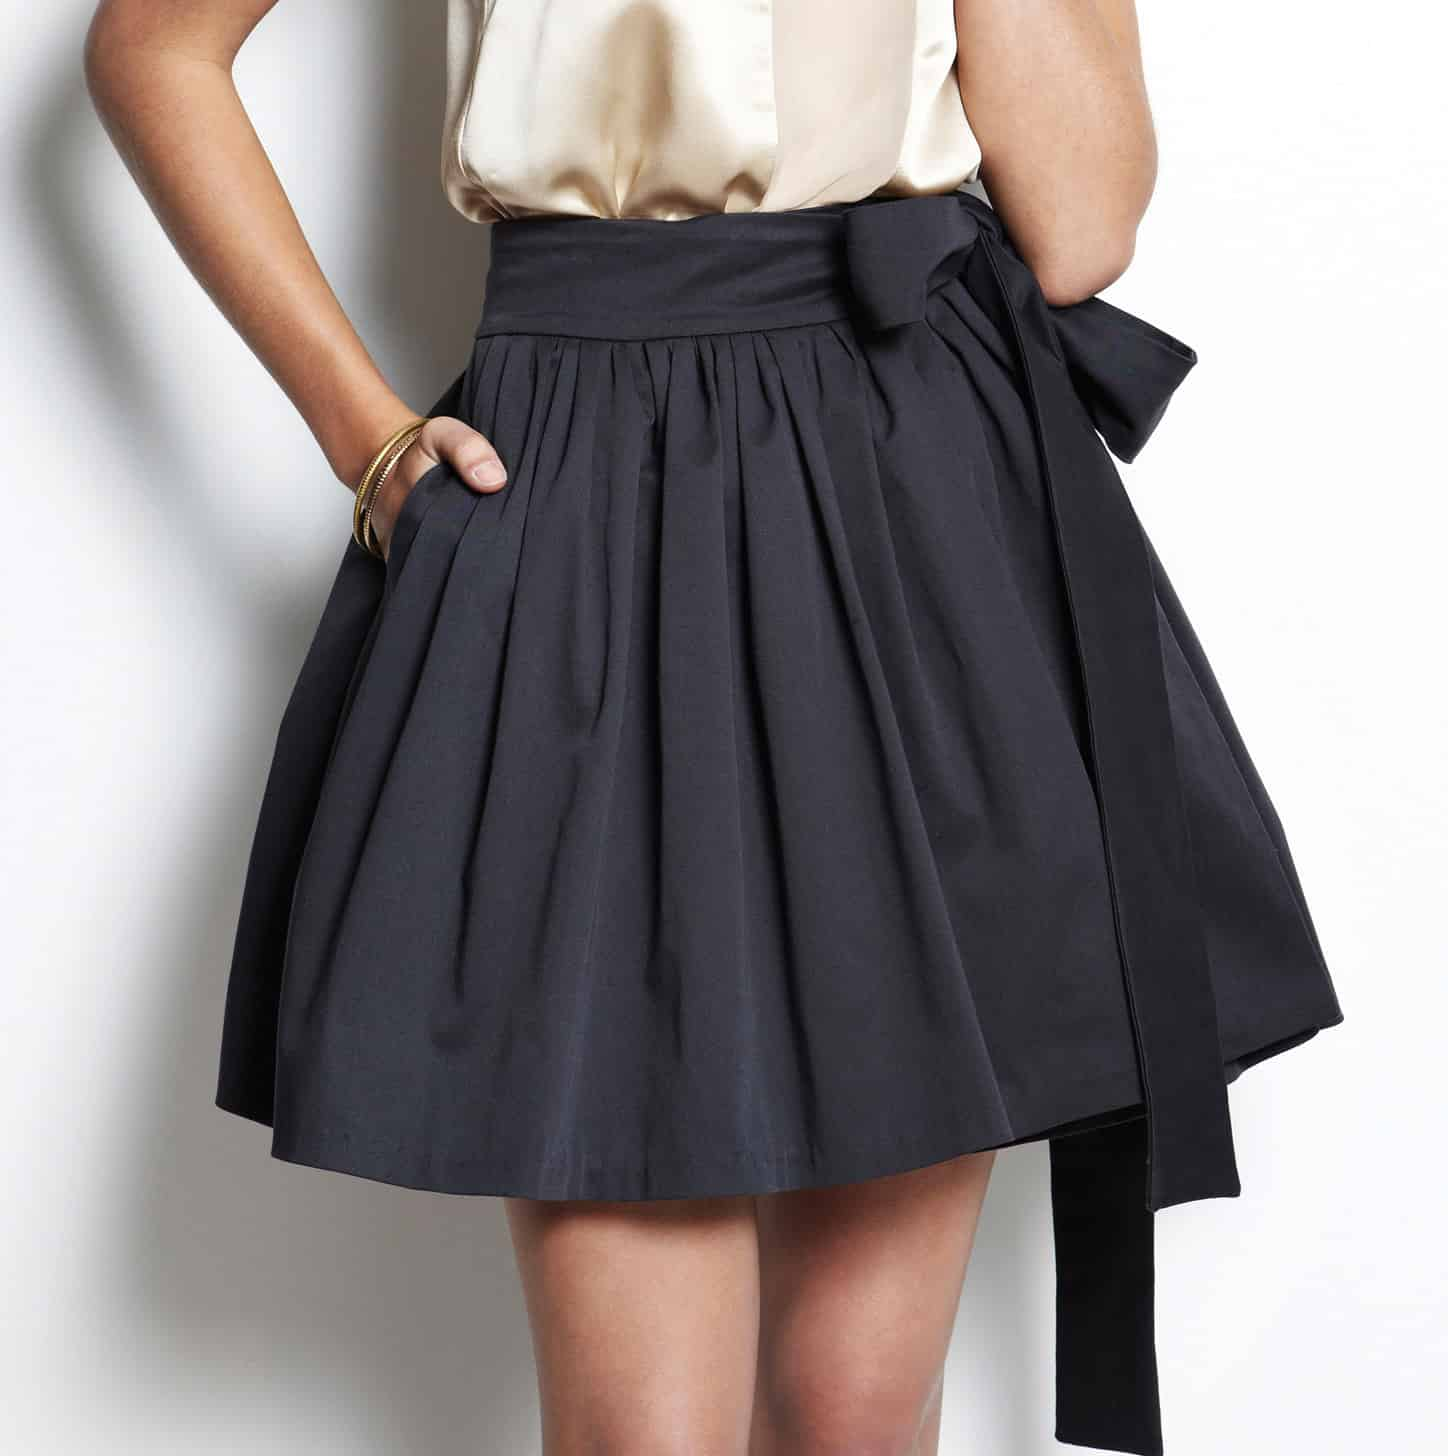 Pleated skirt with a ribbon tie waist